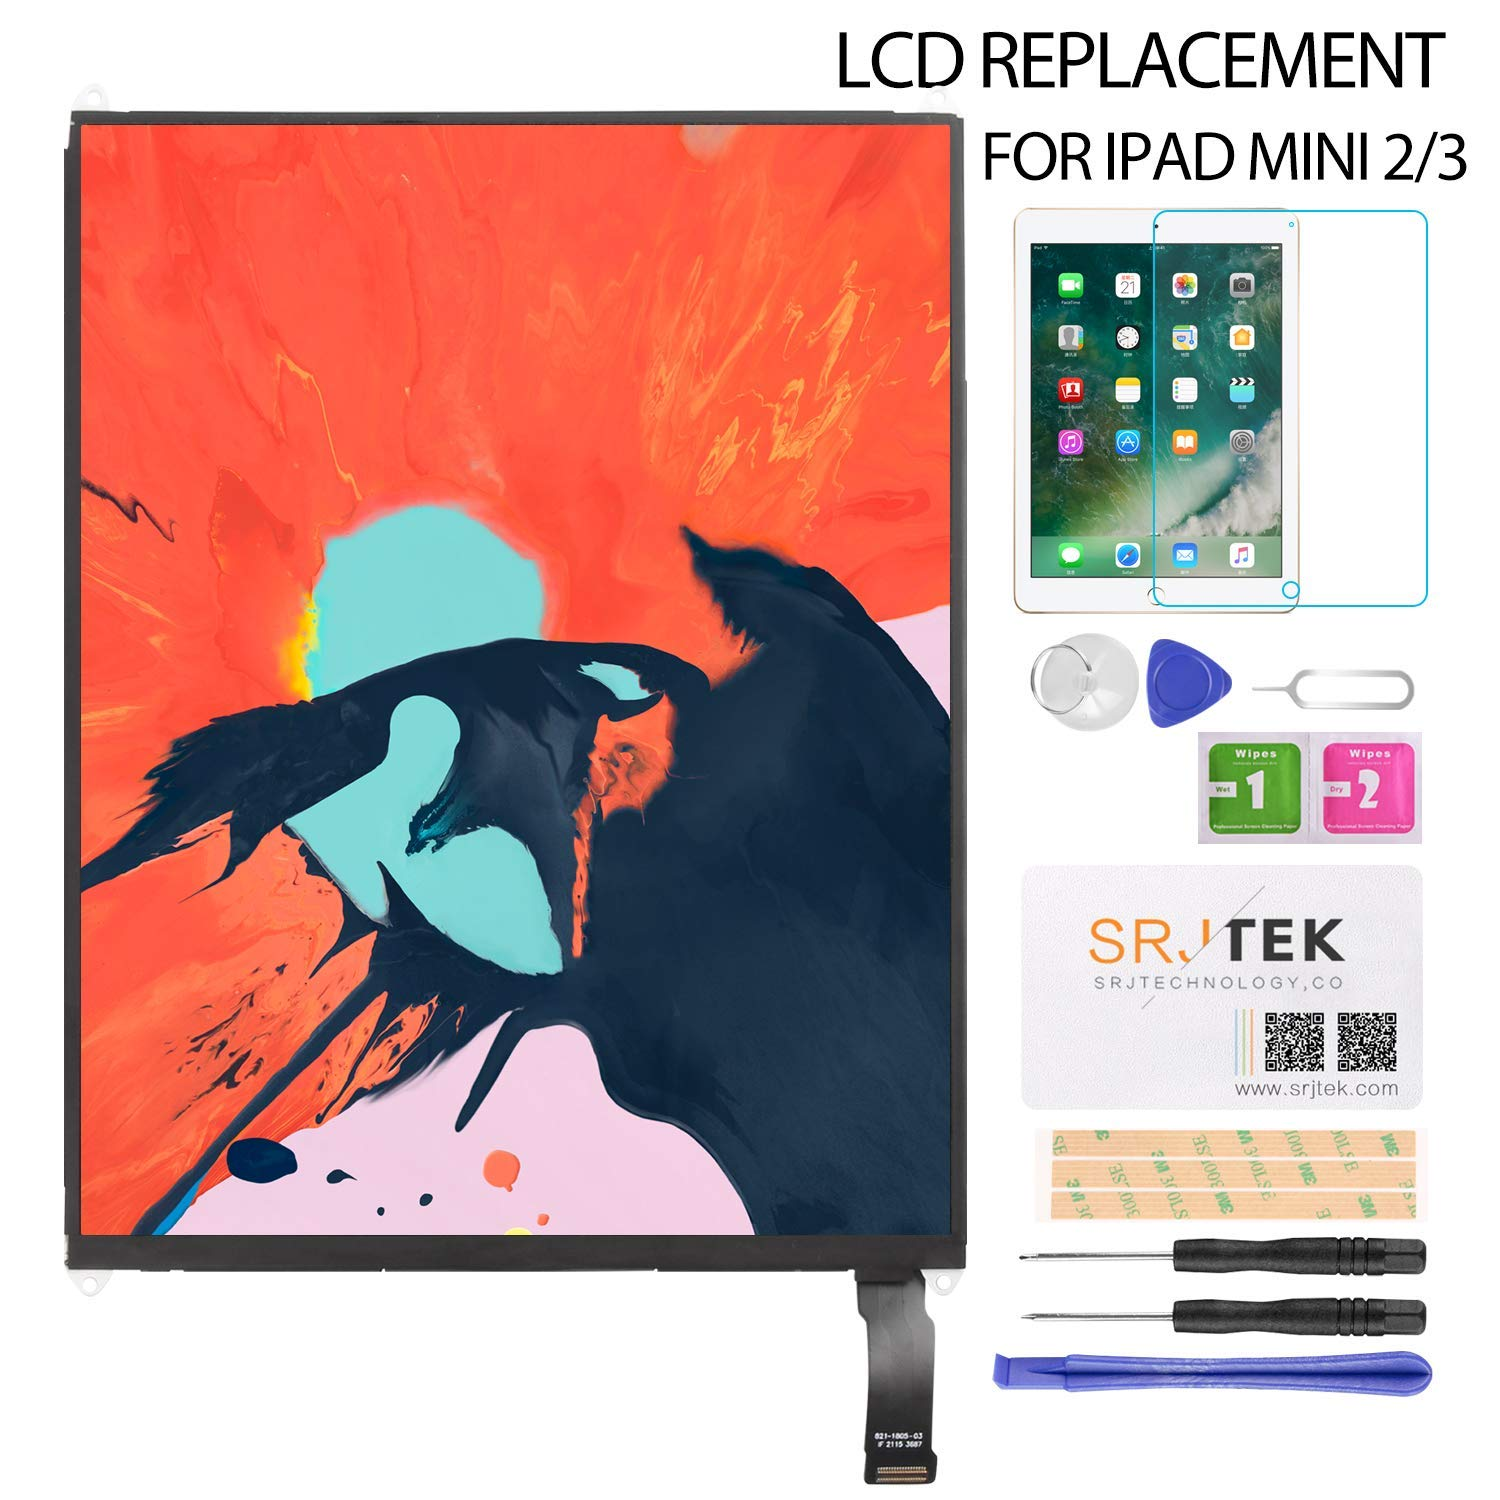 LCD Display Screen Replacement, for iPad Mini 2 3 (7.9'') nA1489 A1490 A1491 A1599 A1560 LCD Panel Repair Parts Kit,Include Tempered Glass,6 Month Warranty ... (Renewed)